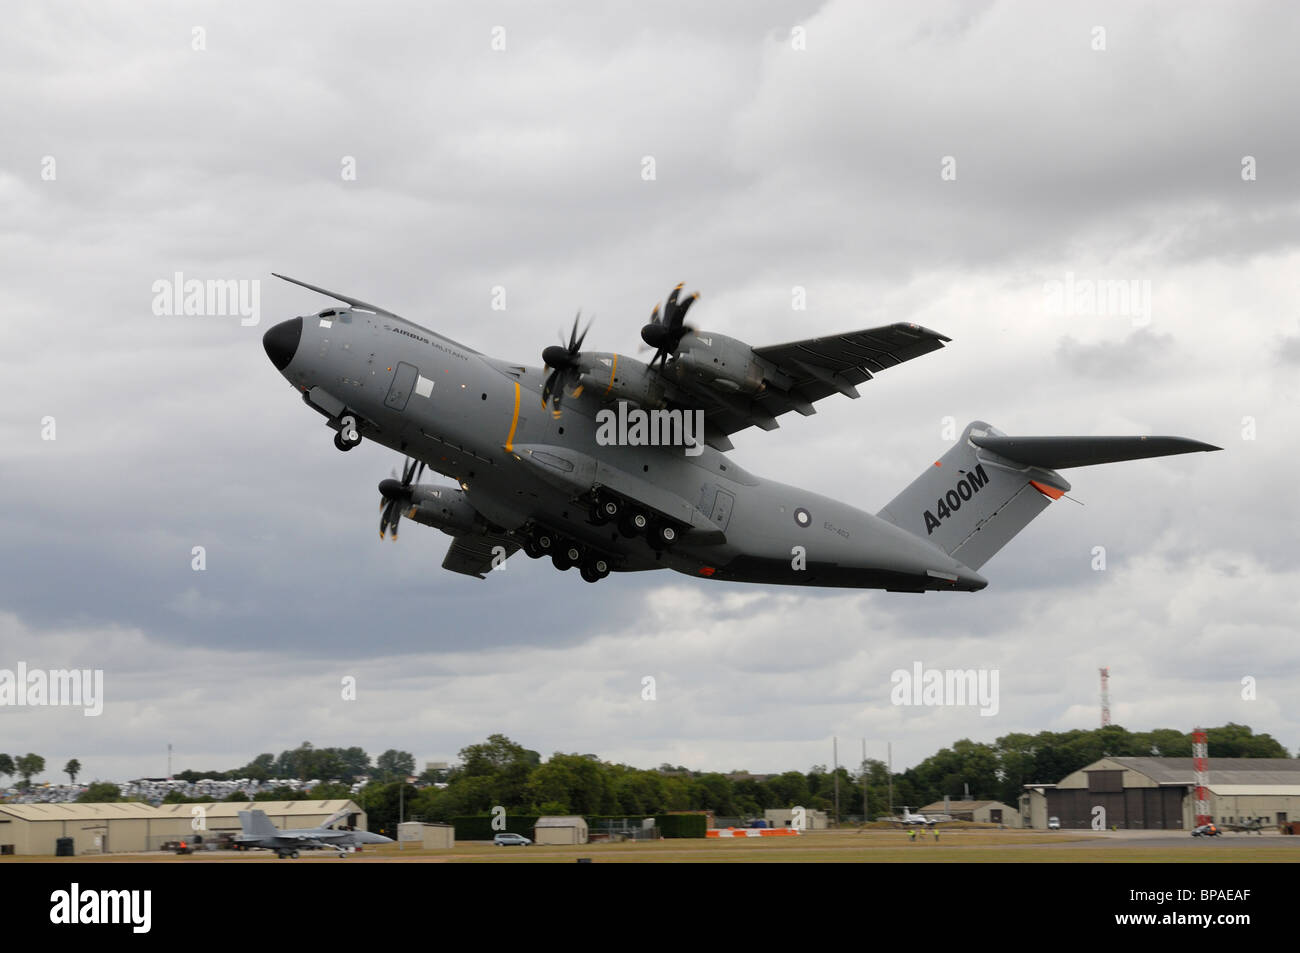 Airbus A400M ( Future Large Aircraft) Tactical Military Transport Aeroplane takes off to display at the RIAT Airshow - Stock Image